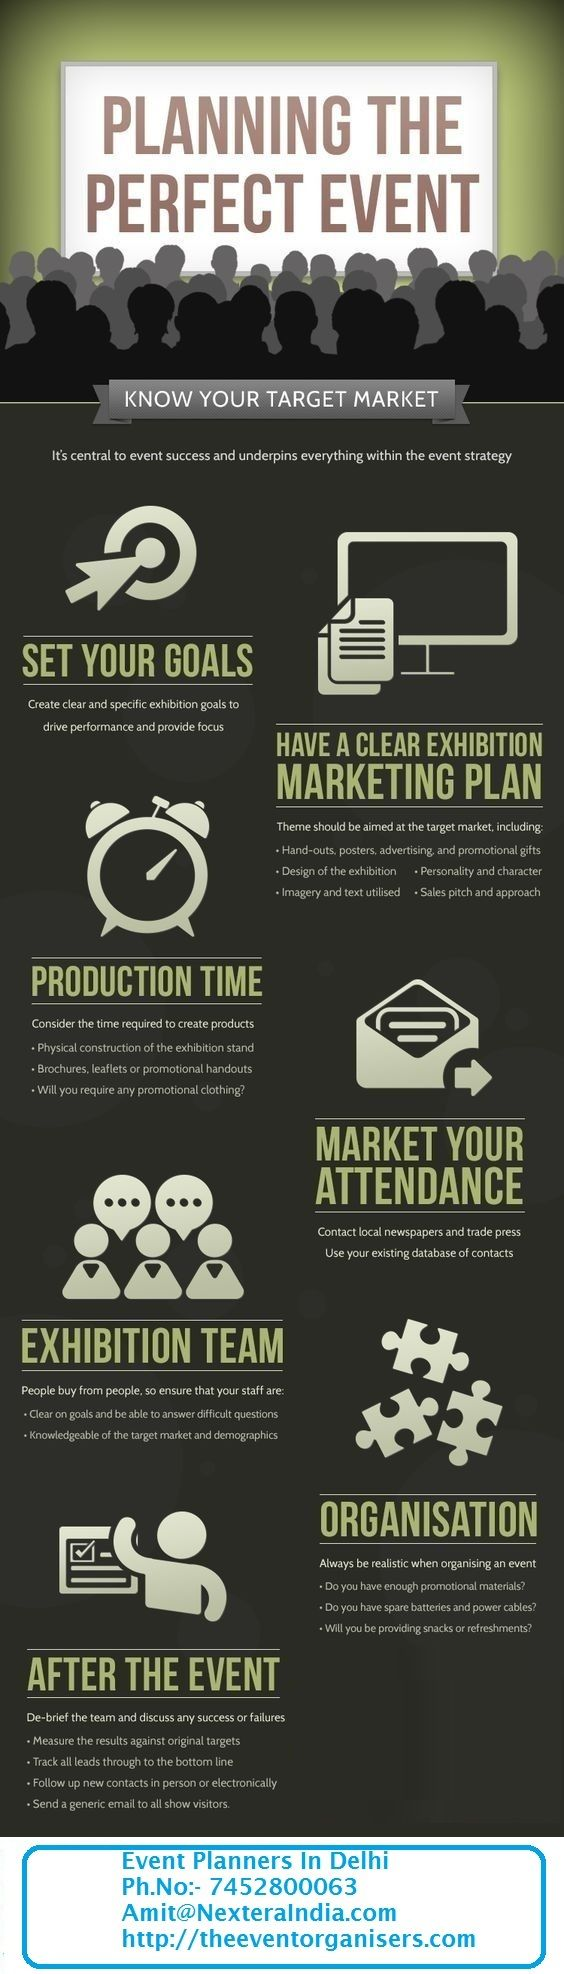 Description fundraising infographic Event Planners in